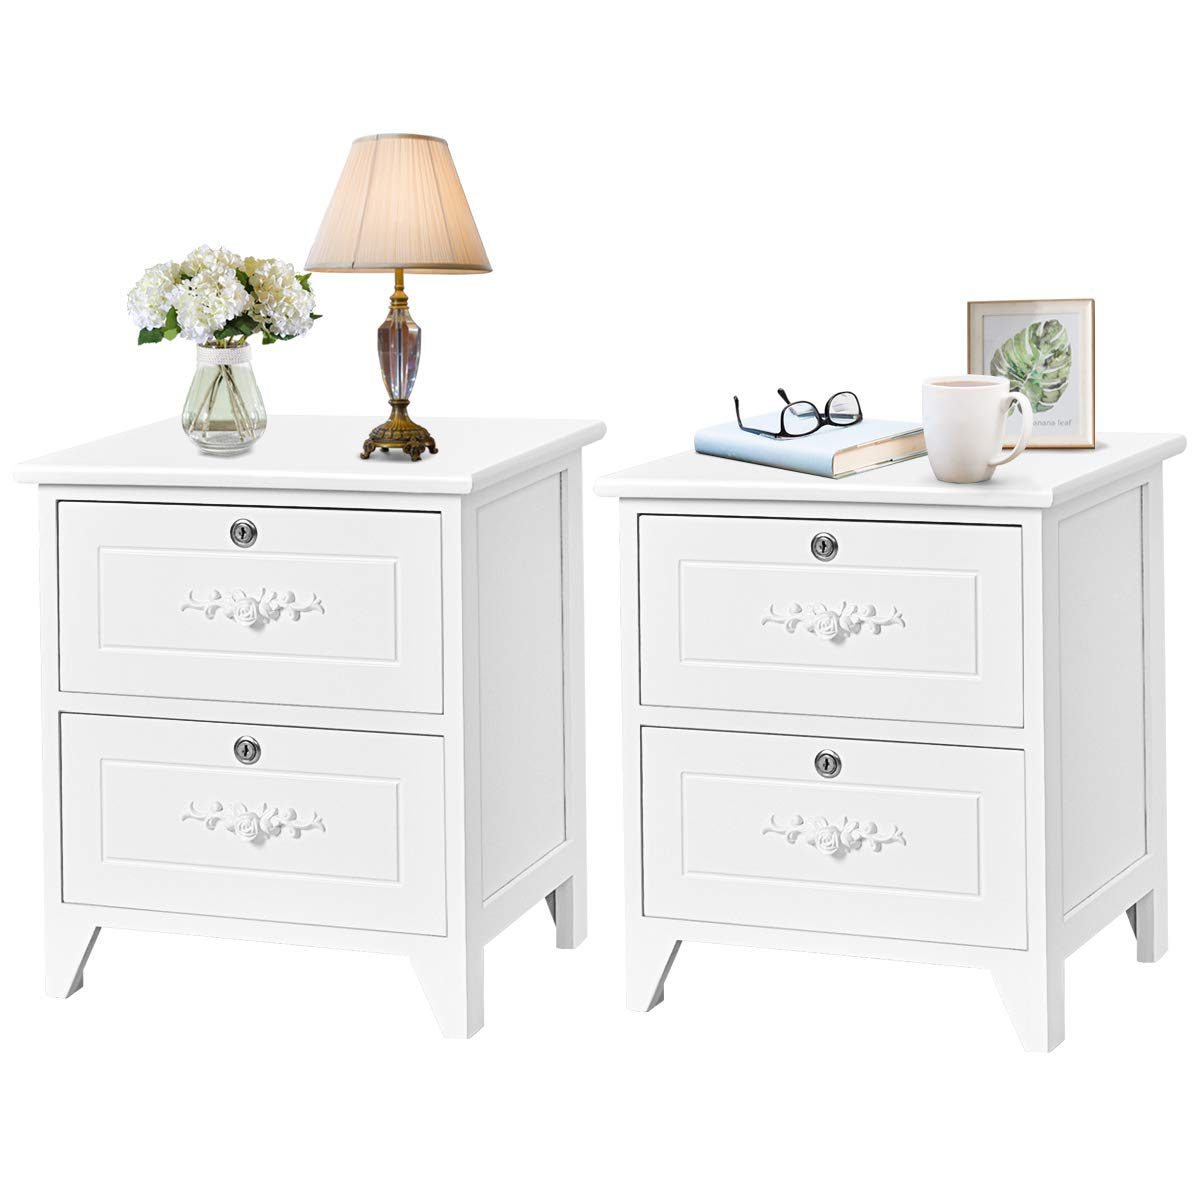 Giantex End Table Wooden W/ 2 Locking Drawers and Handles for Storage and Organize, Solid Structure for Bedroom Beside Sofa Side Nightstand (2, White) by Giantex